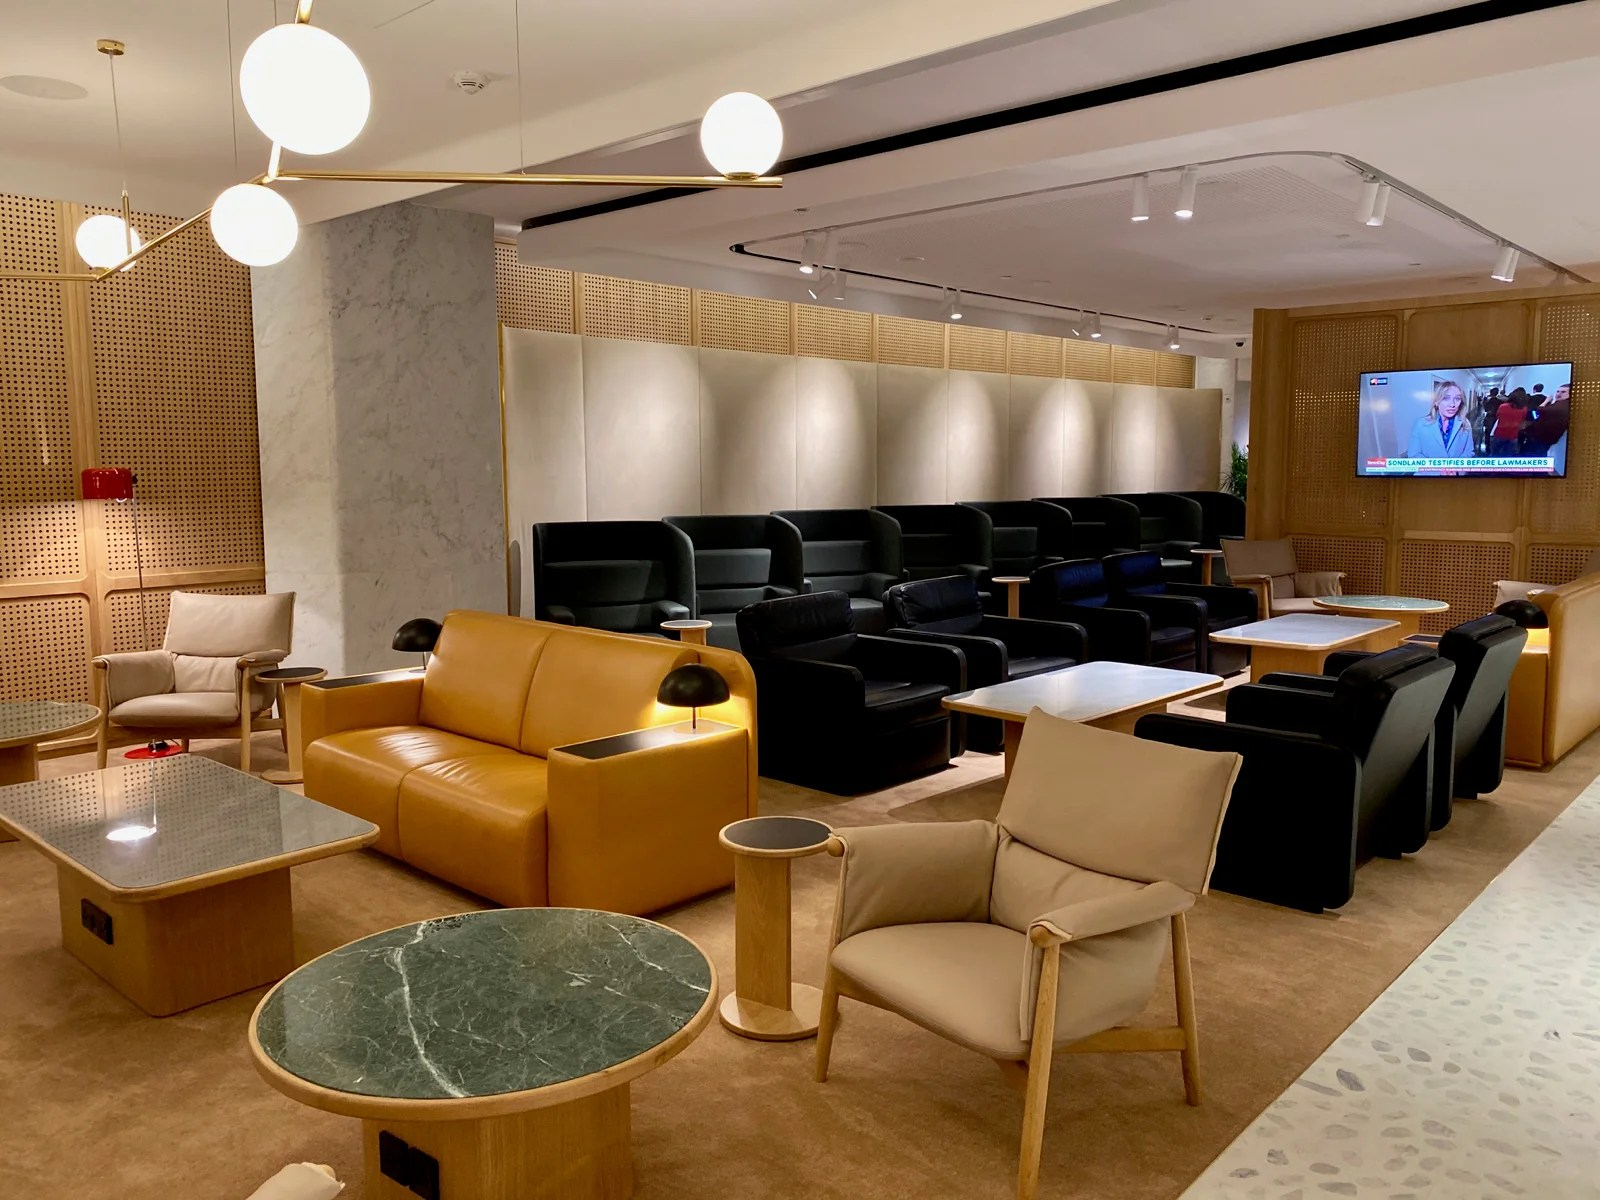 Top-notch oasis for Oneworld elites: A review of Qantas' brand-new International First Lounge in Singapore